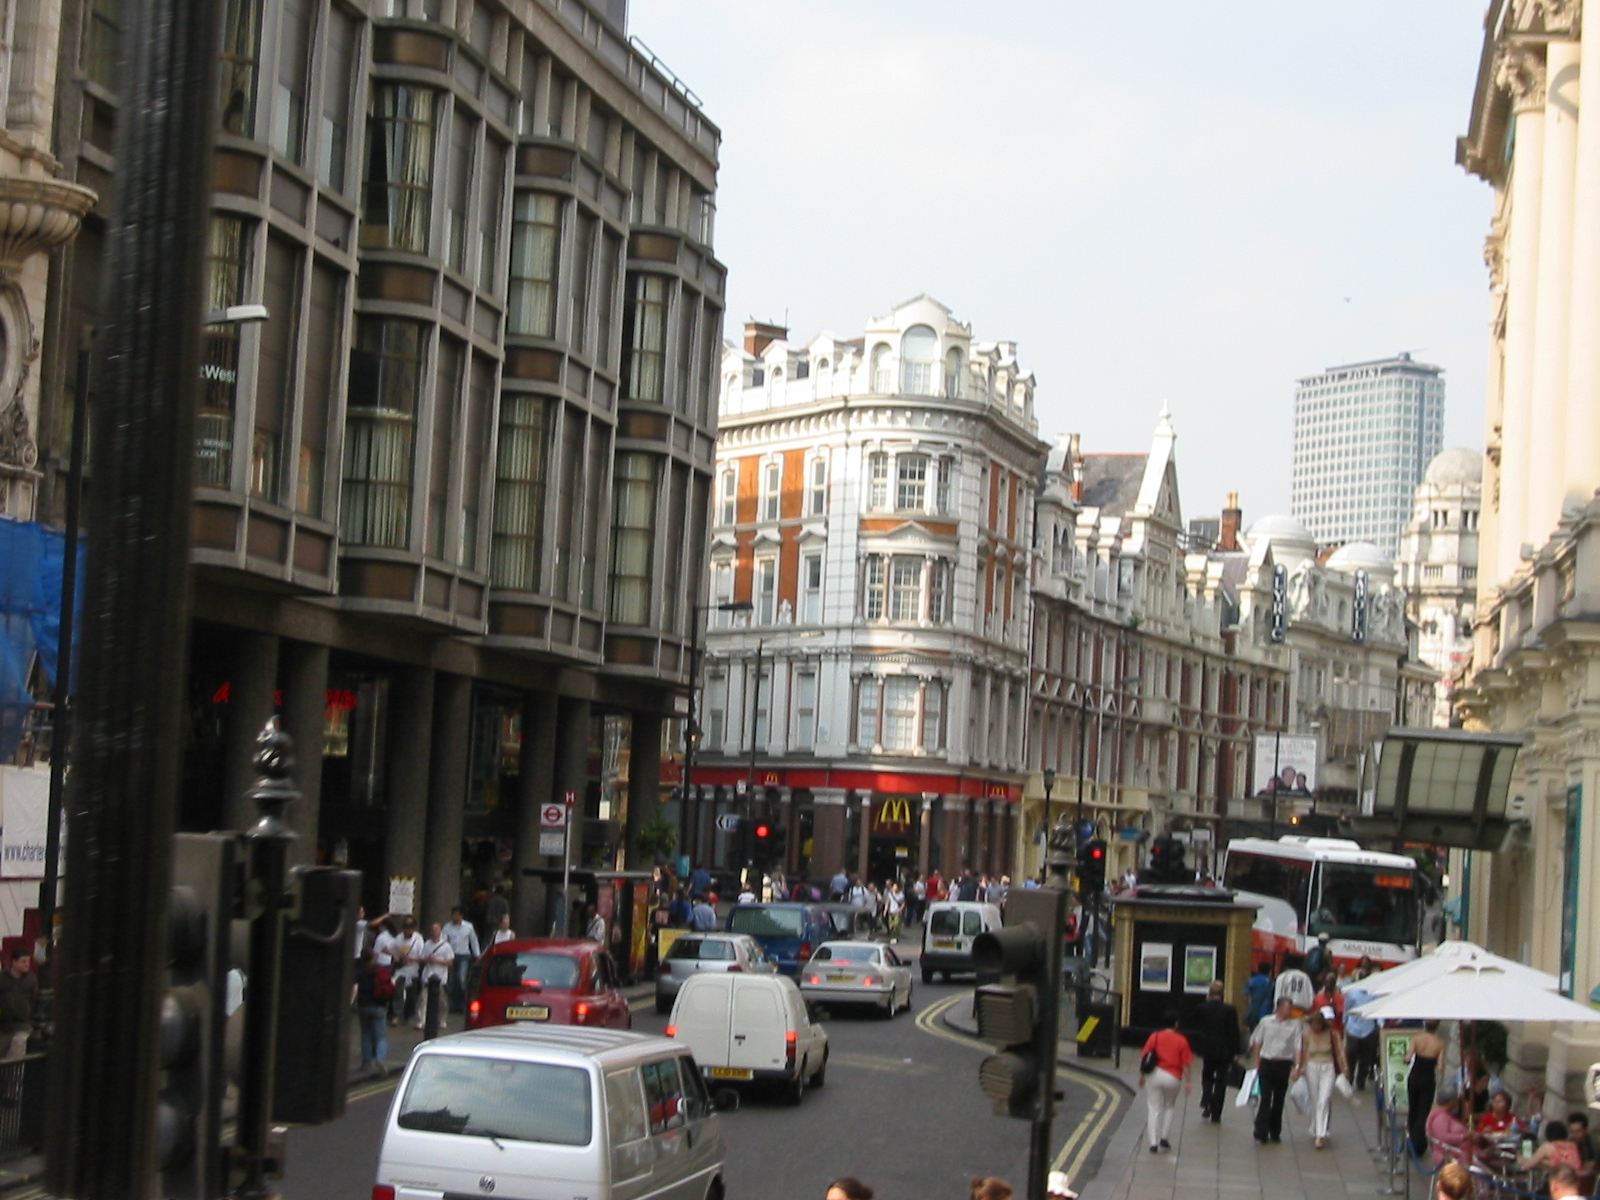 London Images London Street Hd Wallpaper And Background Photos 551163